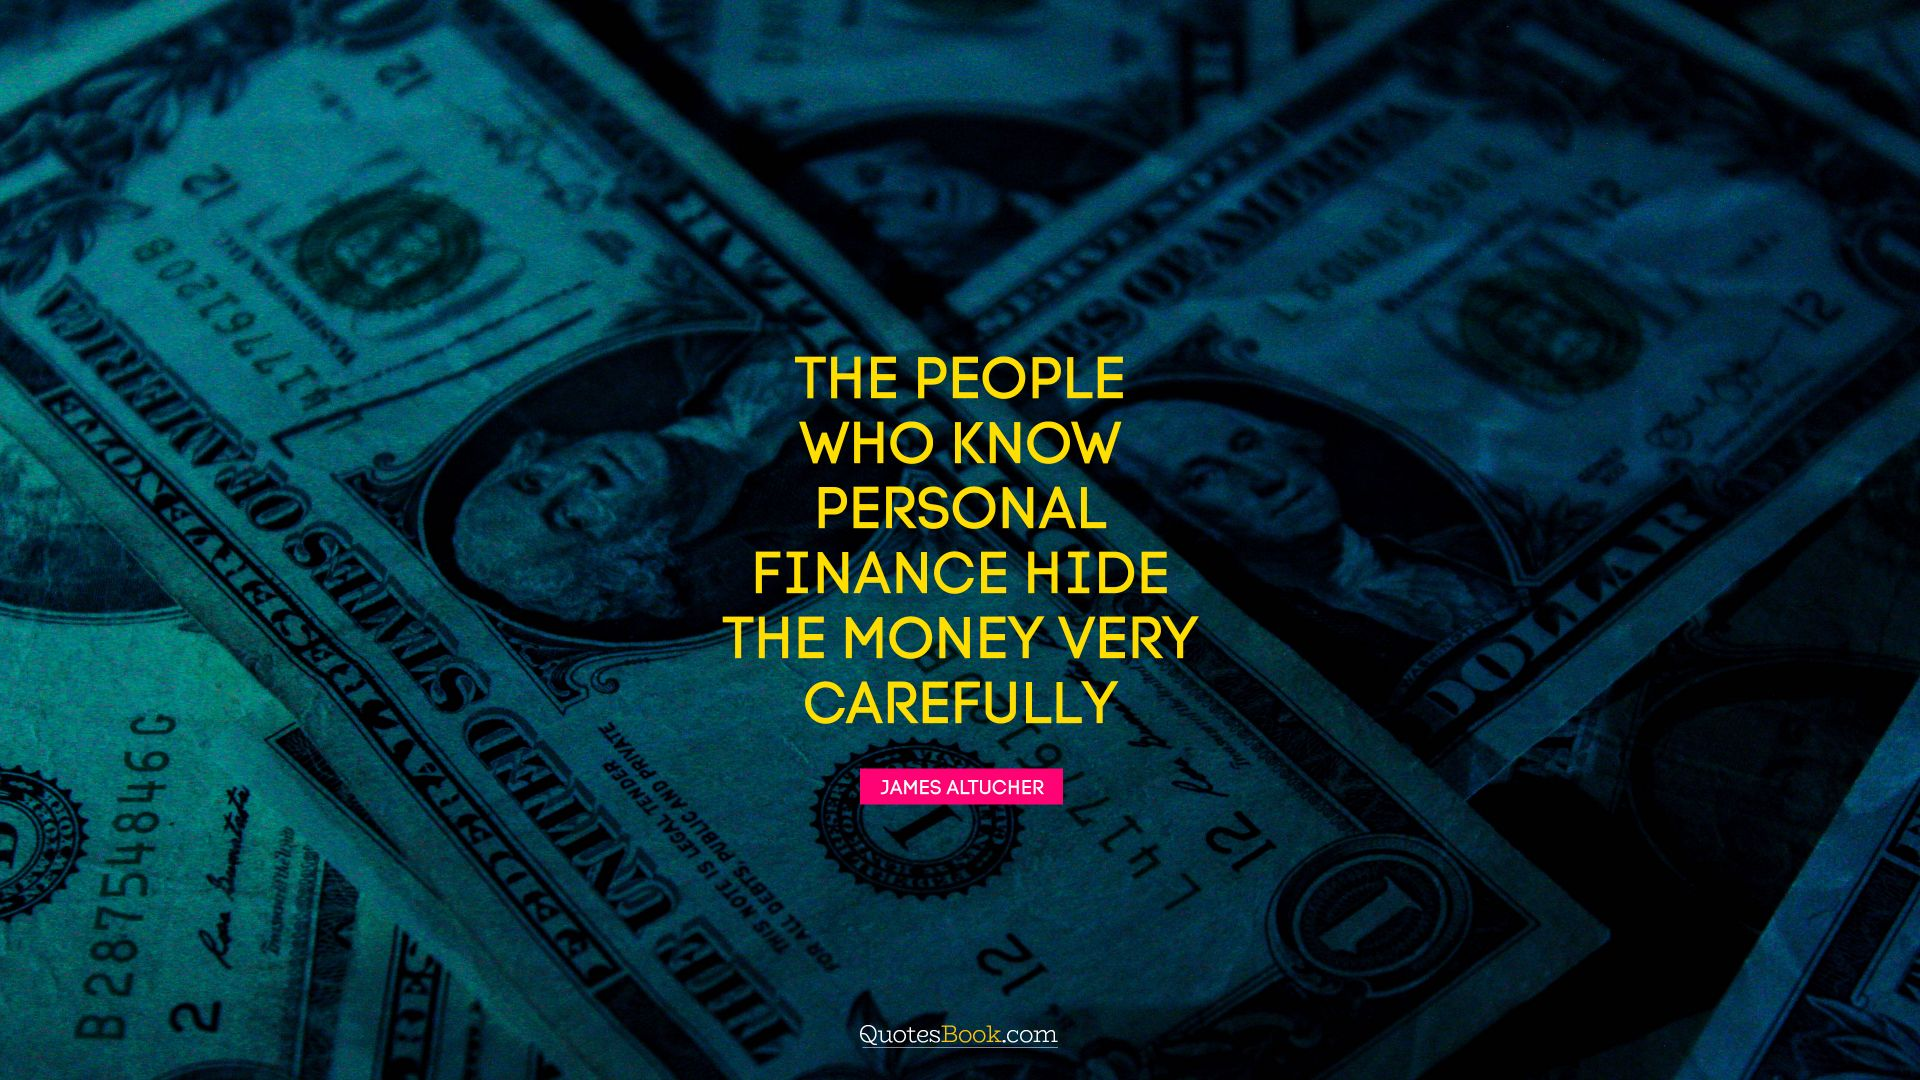 The people who know personal finance hide the money very carefully. - Quote by James Altucher